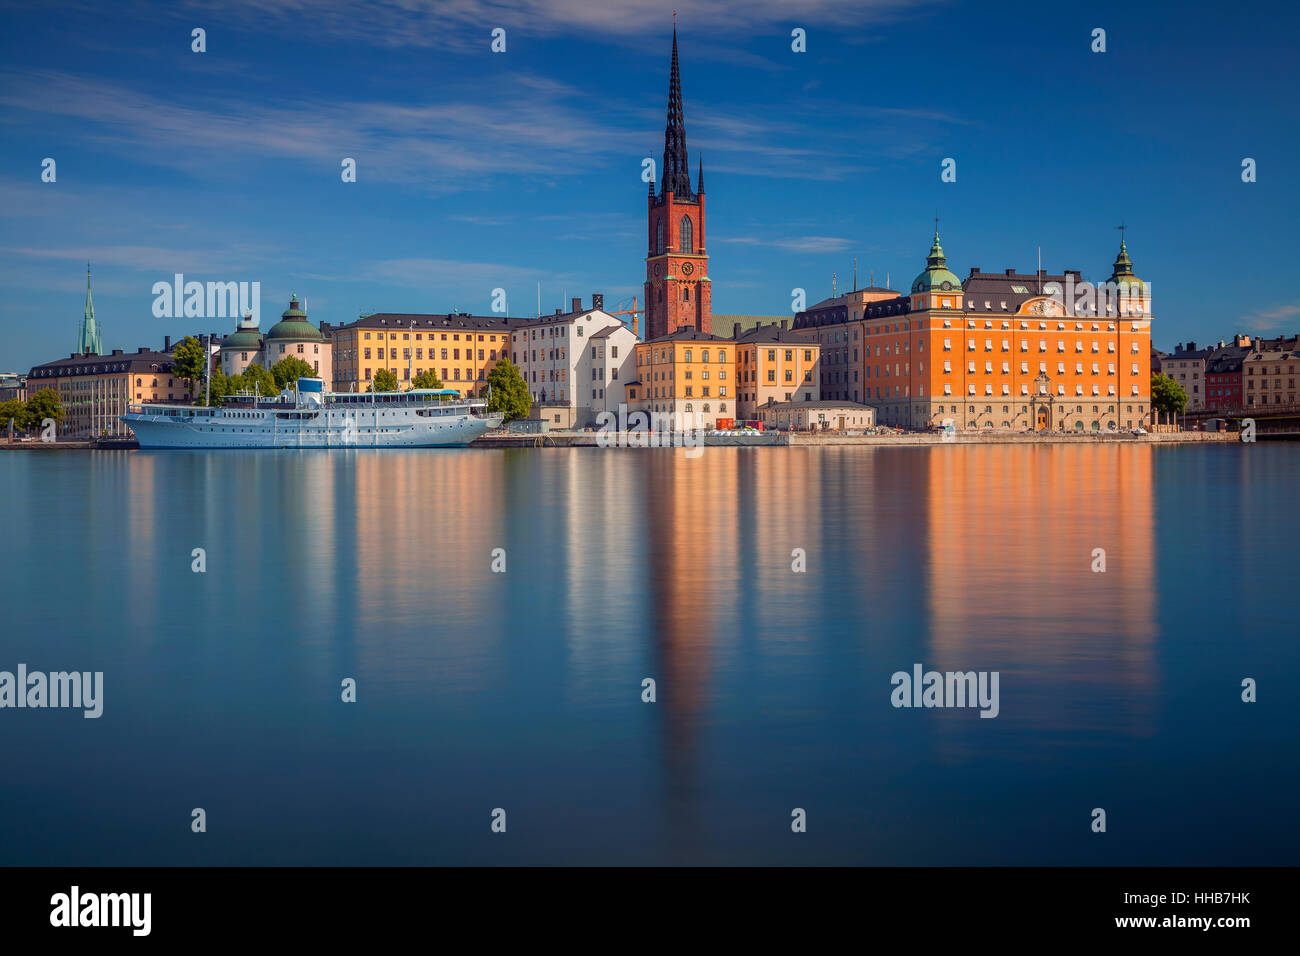 Stockholm. Cityscape image of Stockholm, Sweden during summer morning. - Stock Image